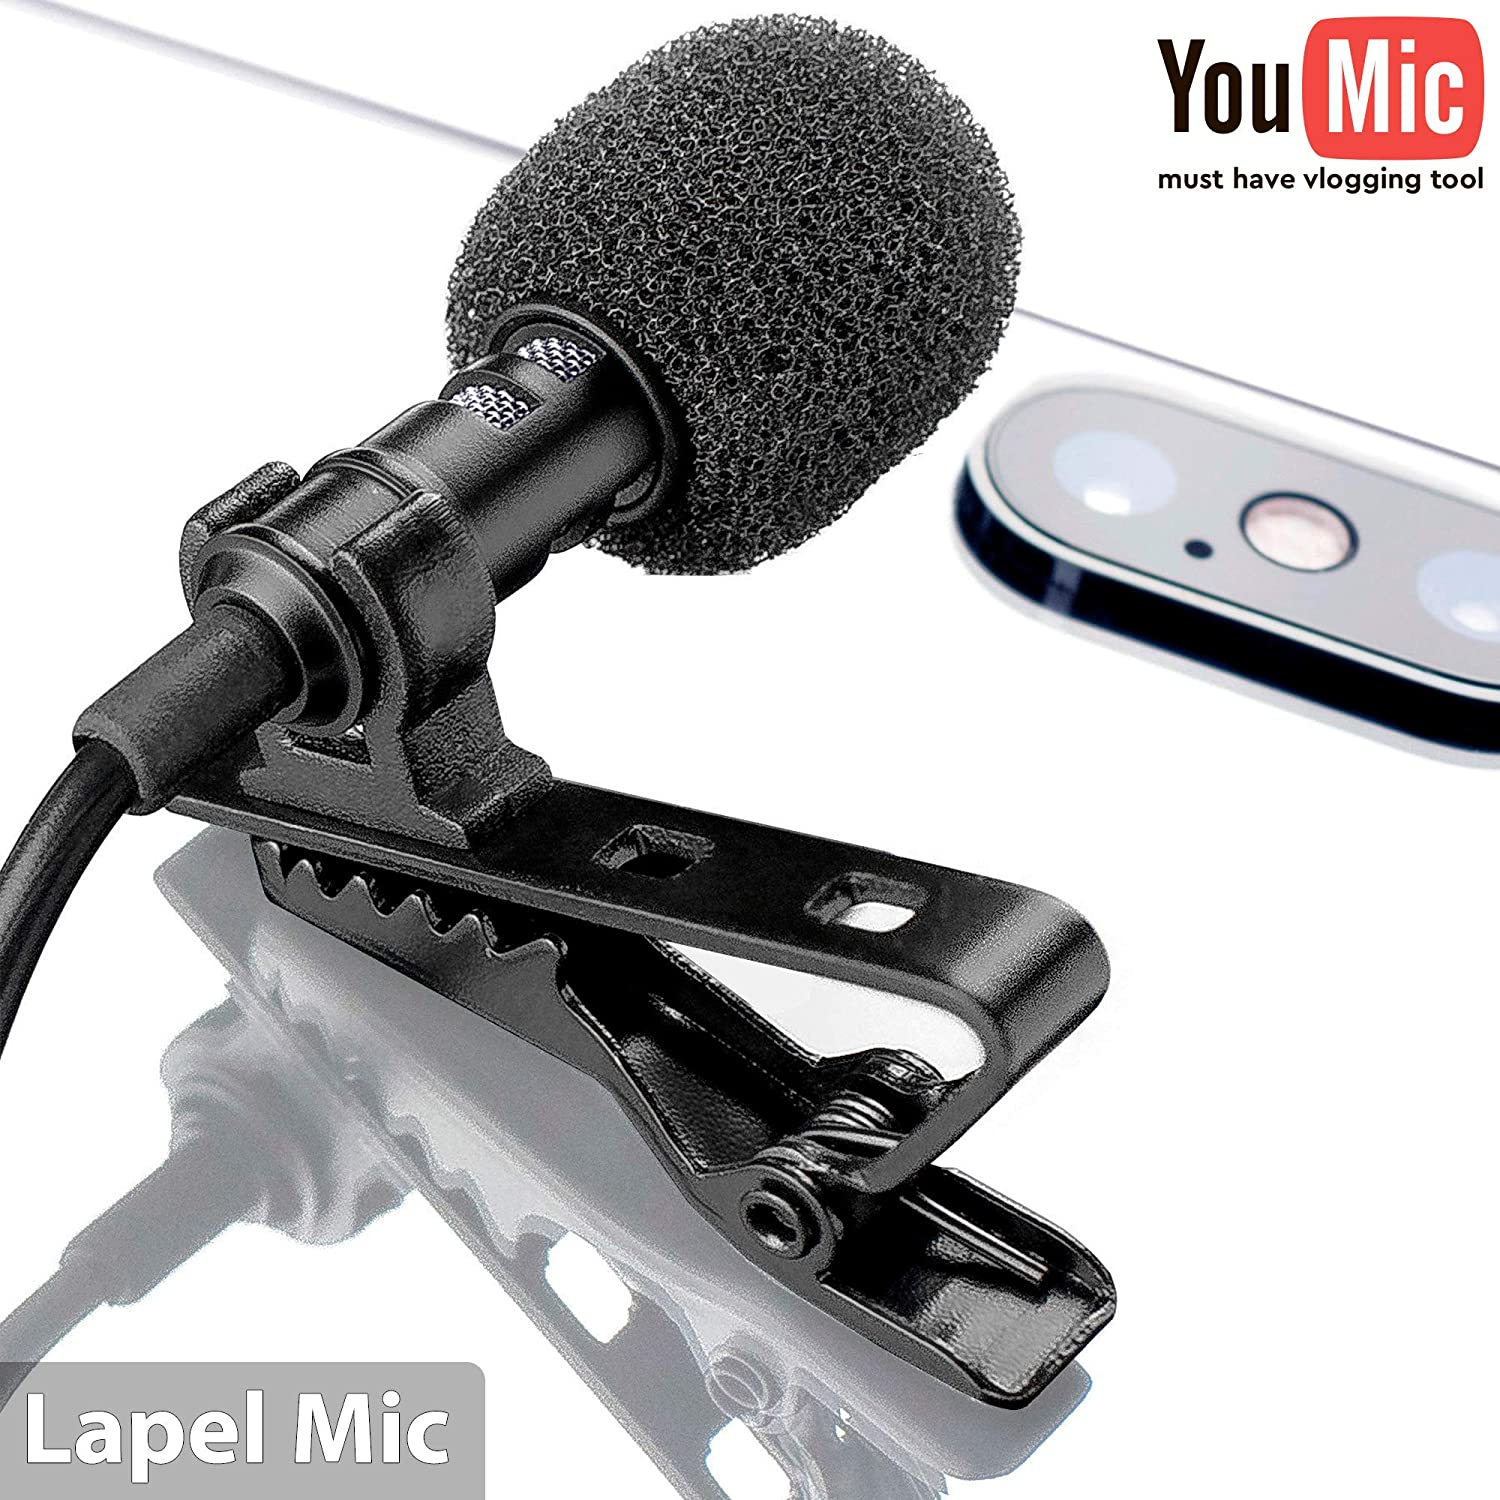 Choosing The Best Vlogging Microphone - Here's How You Do It